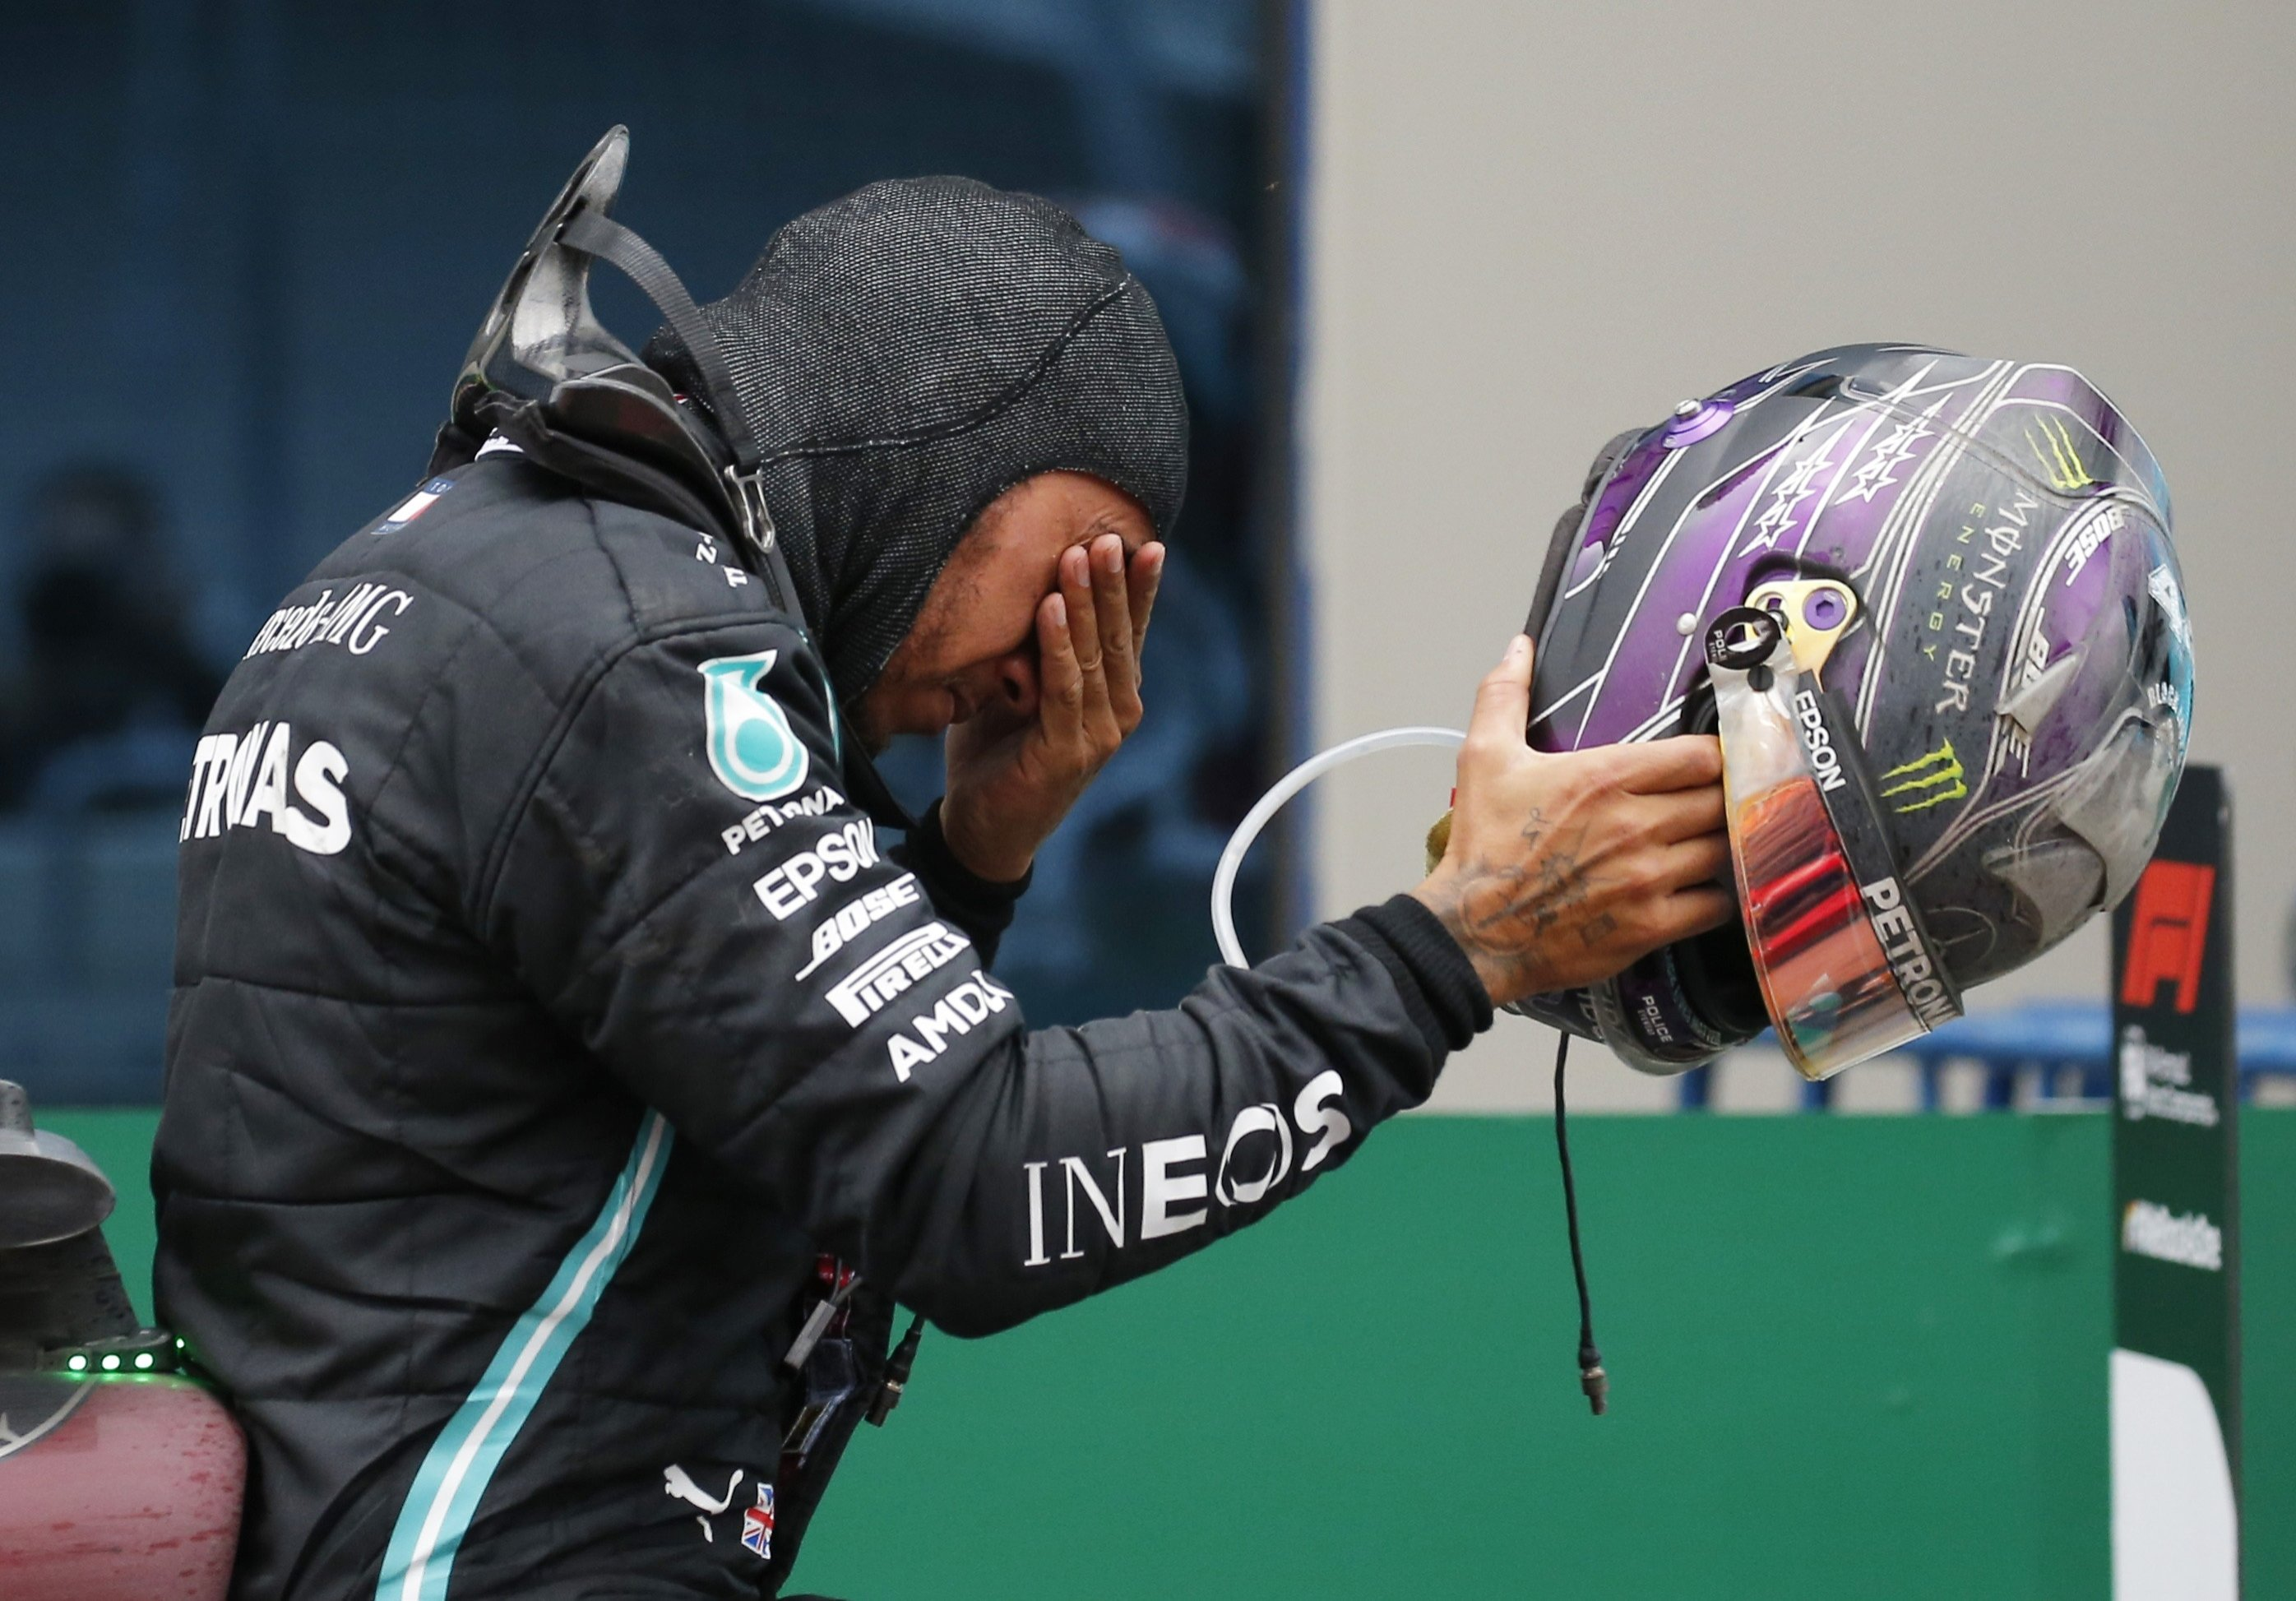 Mercedes driver Lewis Hamilton reacts winning the Formula One Turkish Grand Prix in Istanbul, Turkey, Nov. 15, 2020. (Reuters Photo)